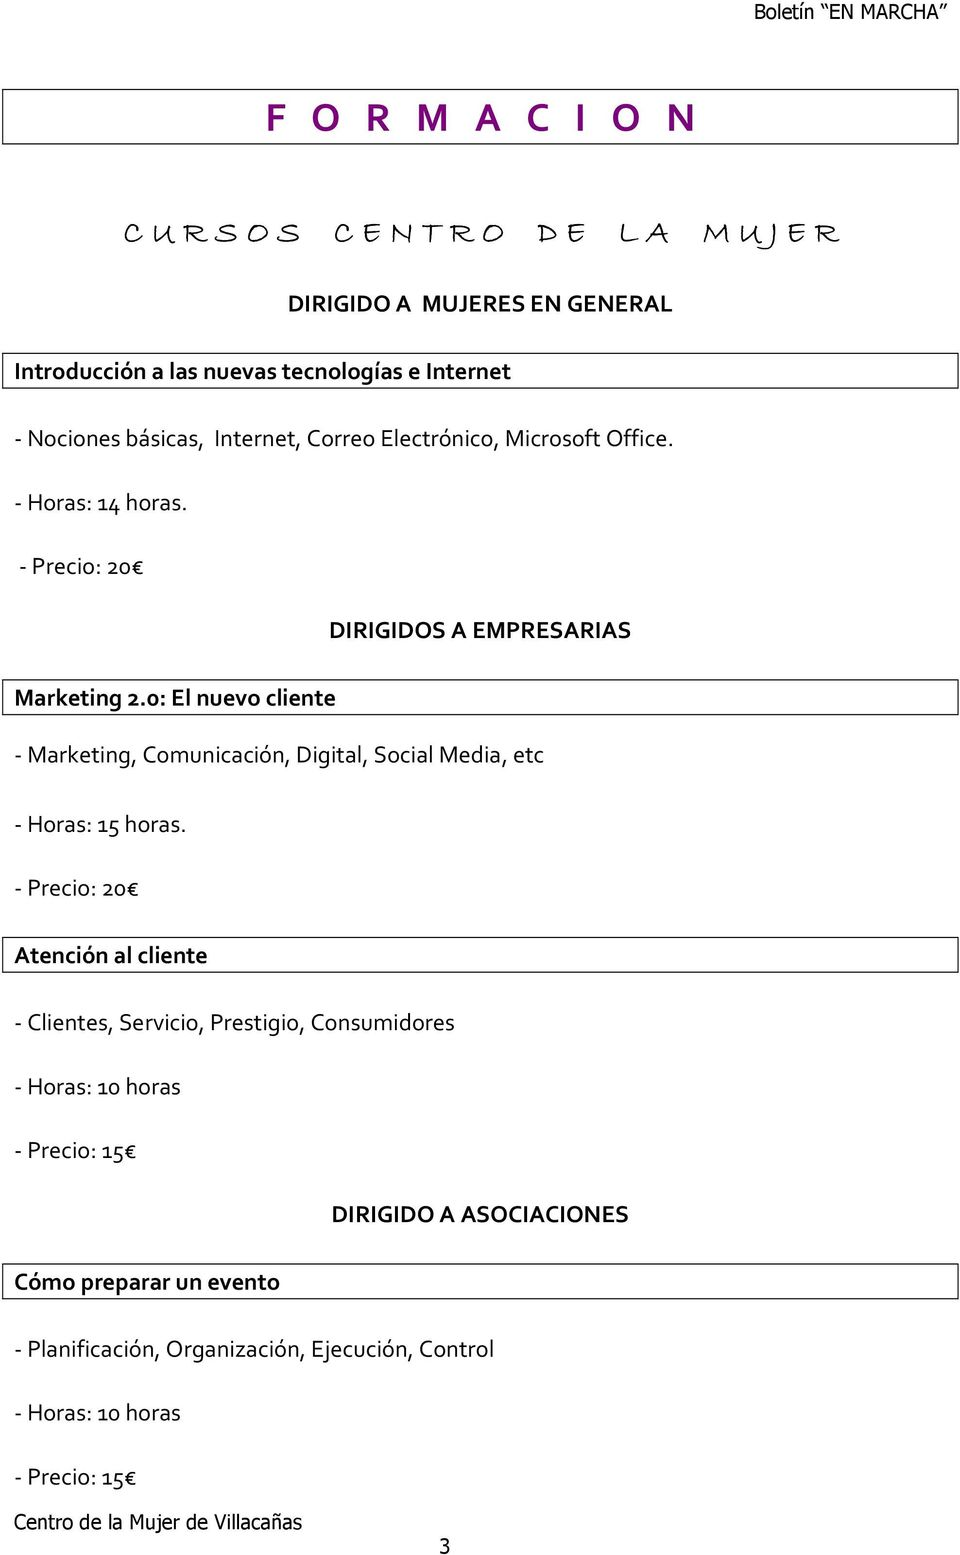 0: El nuevo cliente - Marketing, Comunicación, Digital, Social Media, etc - Horas: 15 horas.